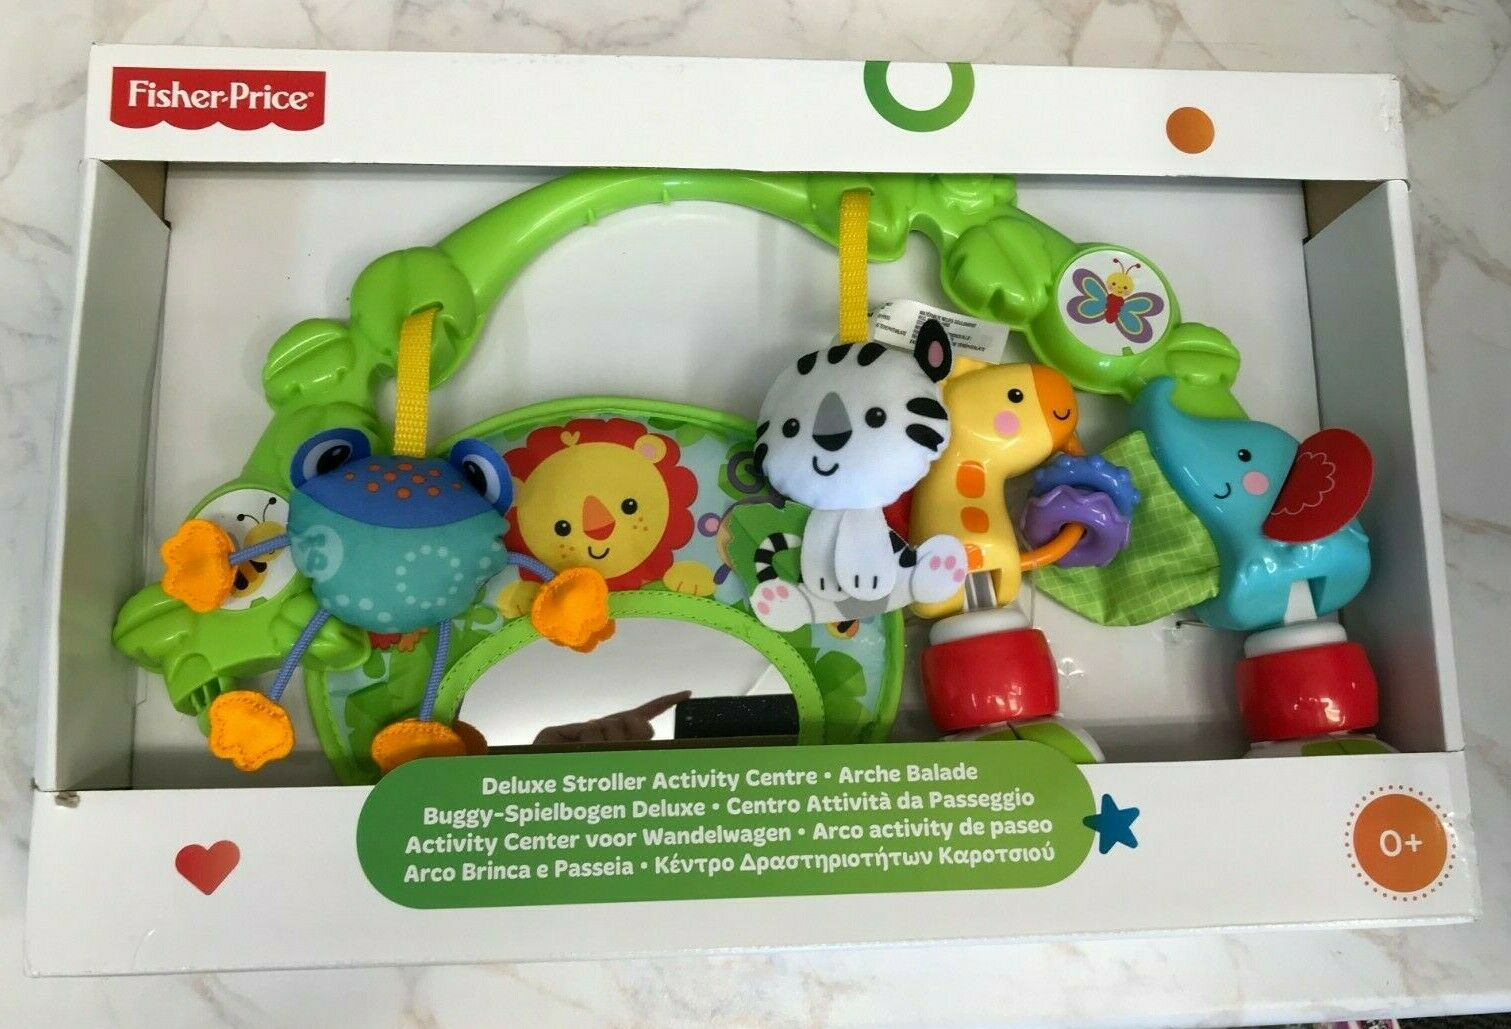 FISHER PRICE DELUXE STROLLER ACTIVITY CENTRE BHW57